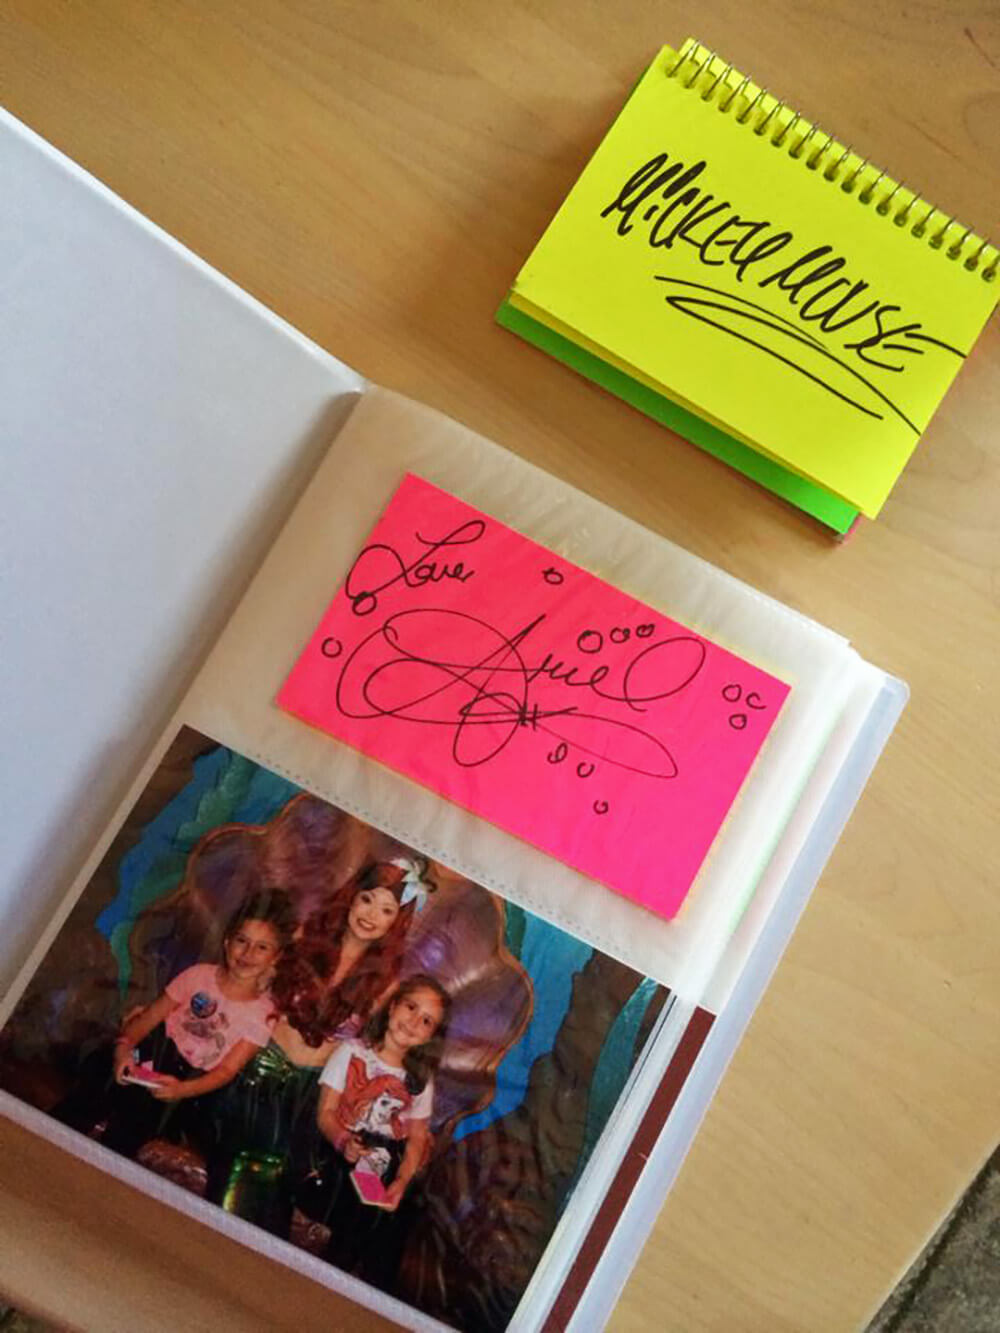 Top 10 Disney World Character Autograph Ideas - Autograph Album